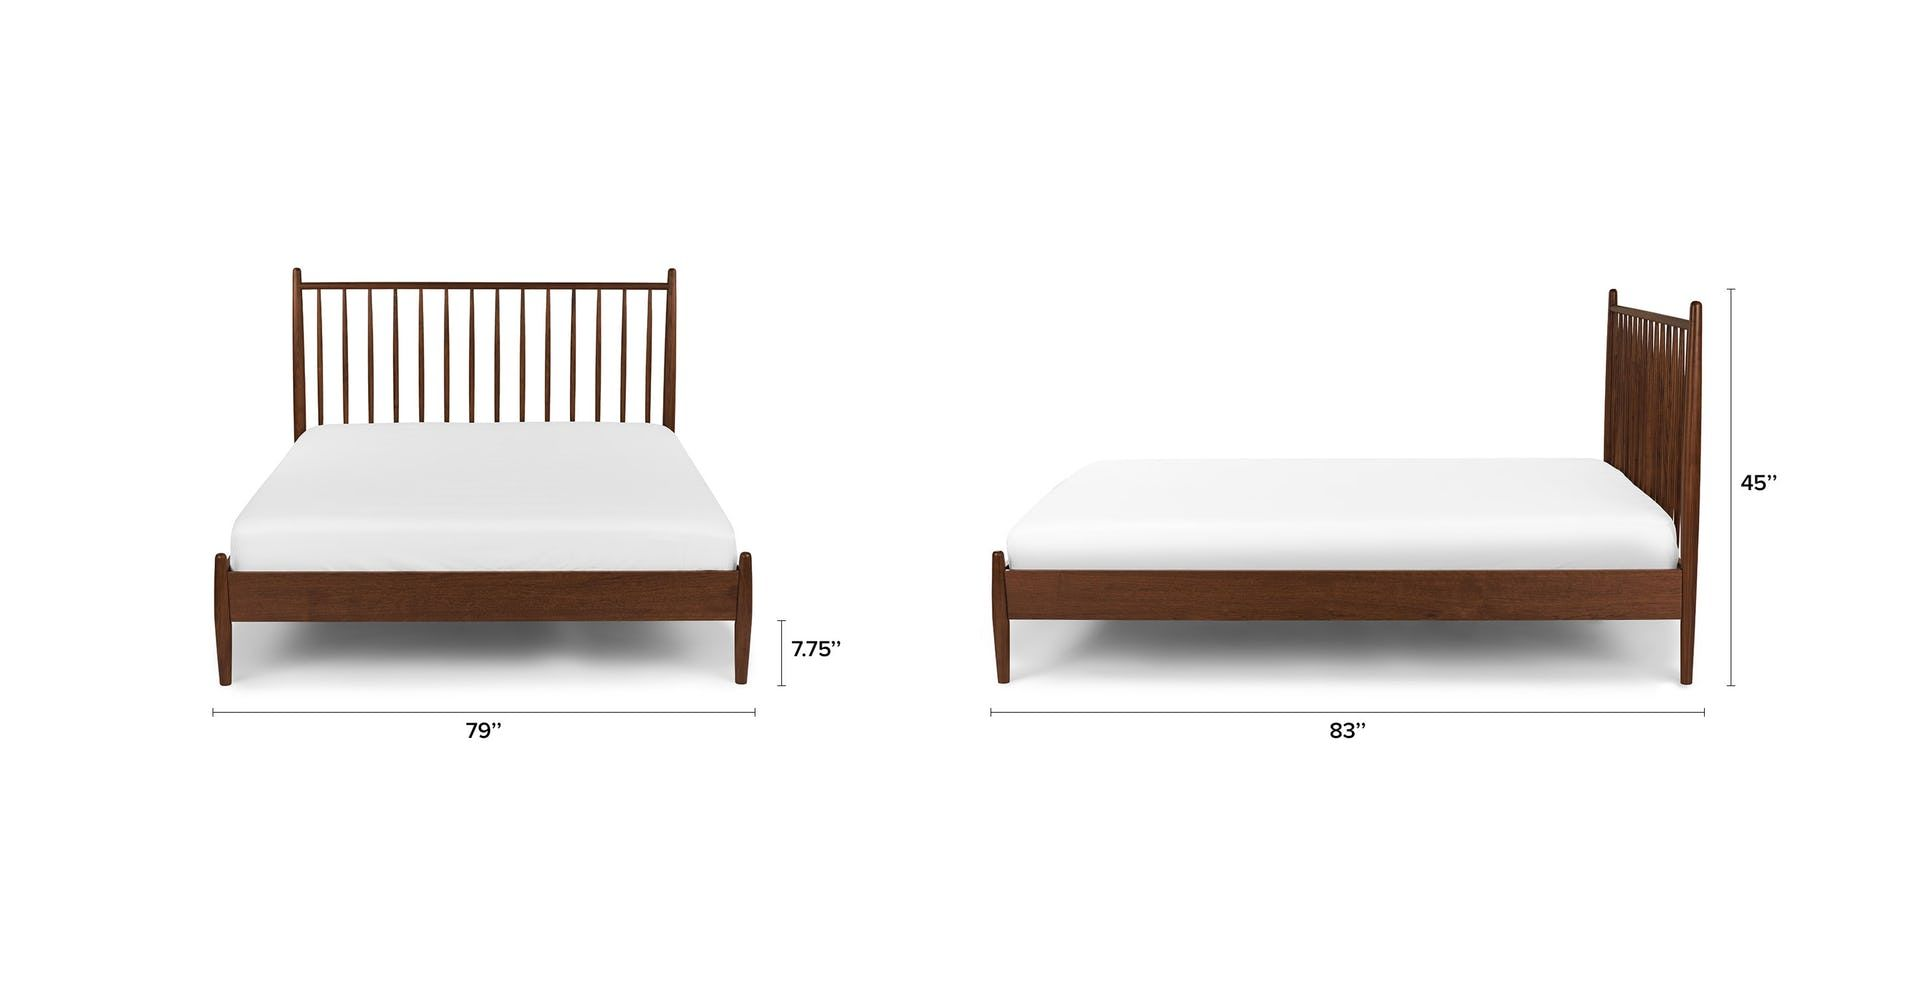 Lenia Walnut King Bed With Images Bed King Beds Modern Bed Frame